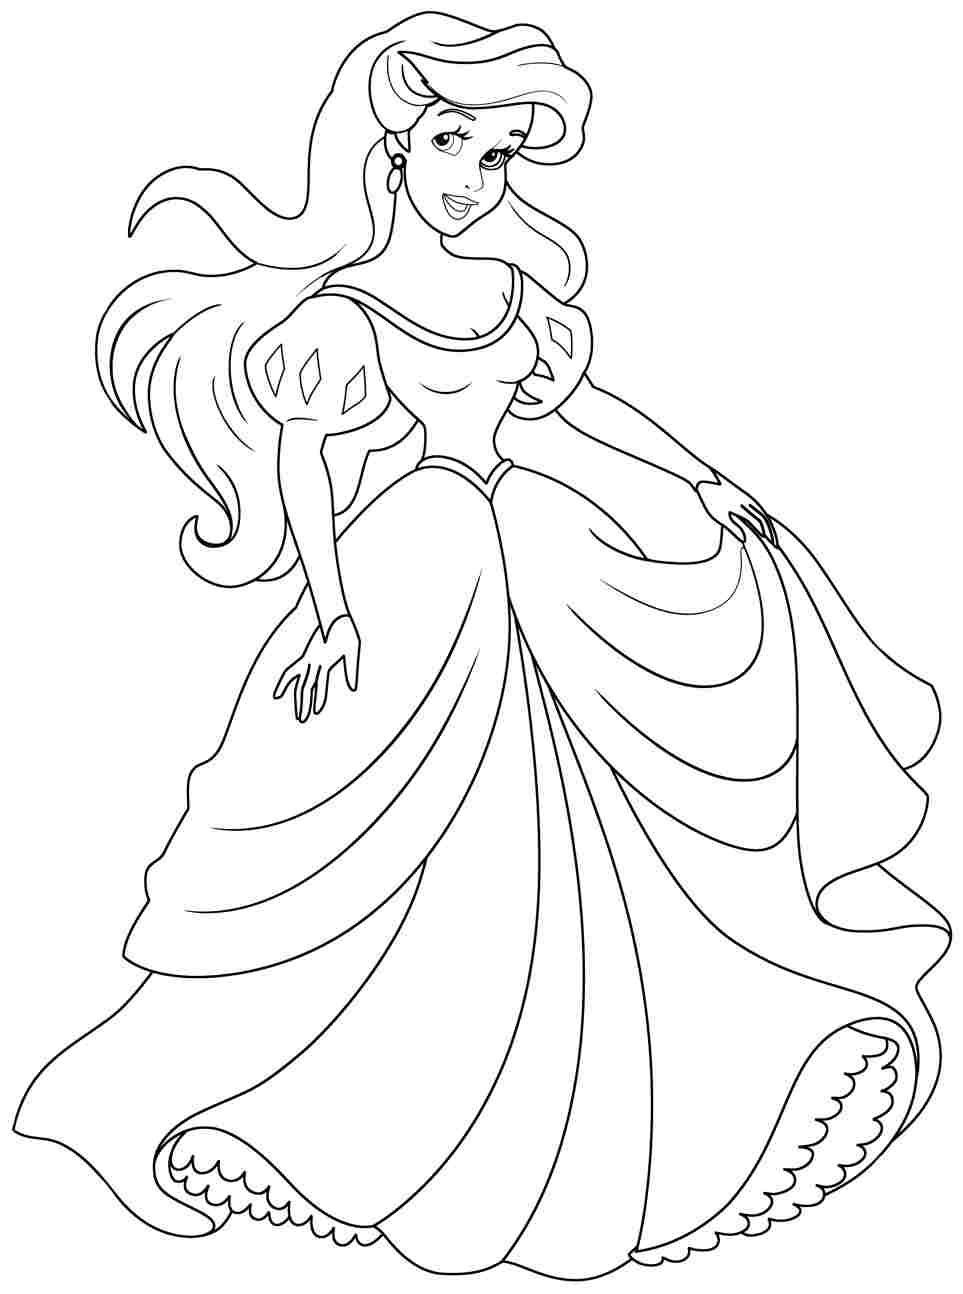 ariel coloring pages online - photo#6